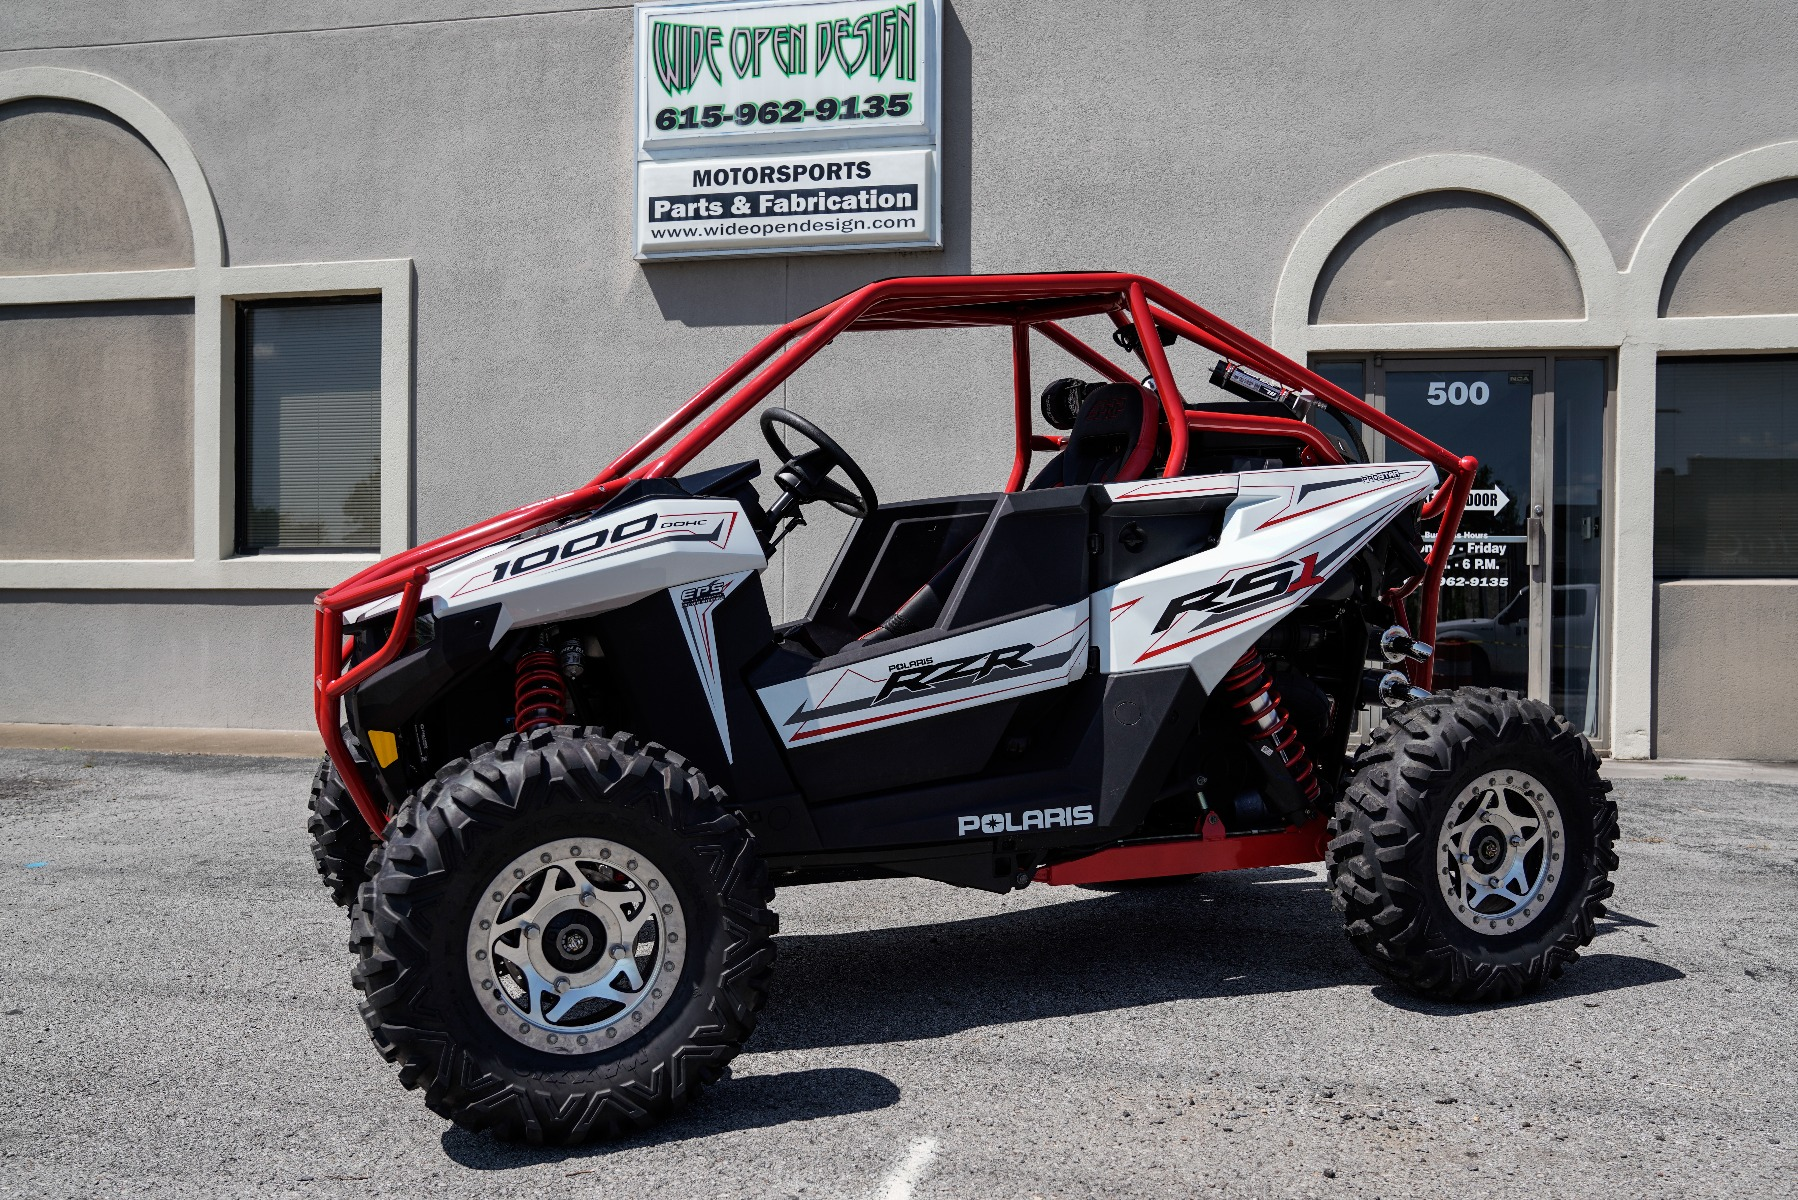 Polaris RZR RS1 Roll Cage in front of Wide Open Design Image 1